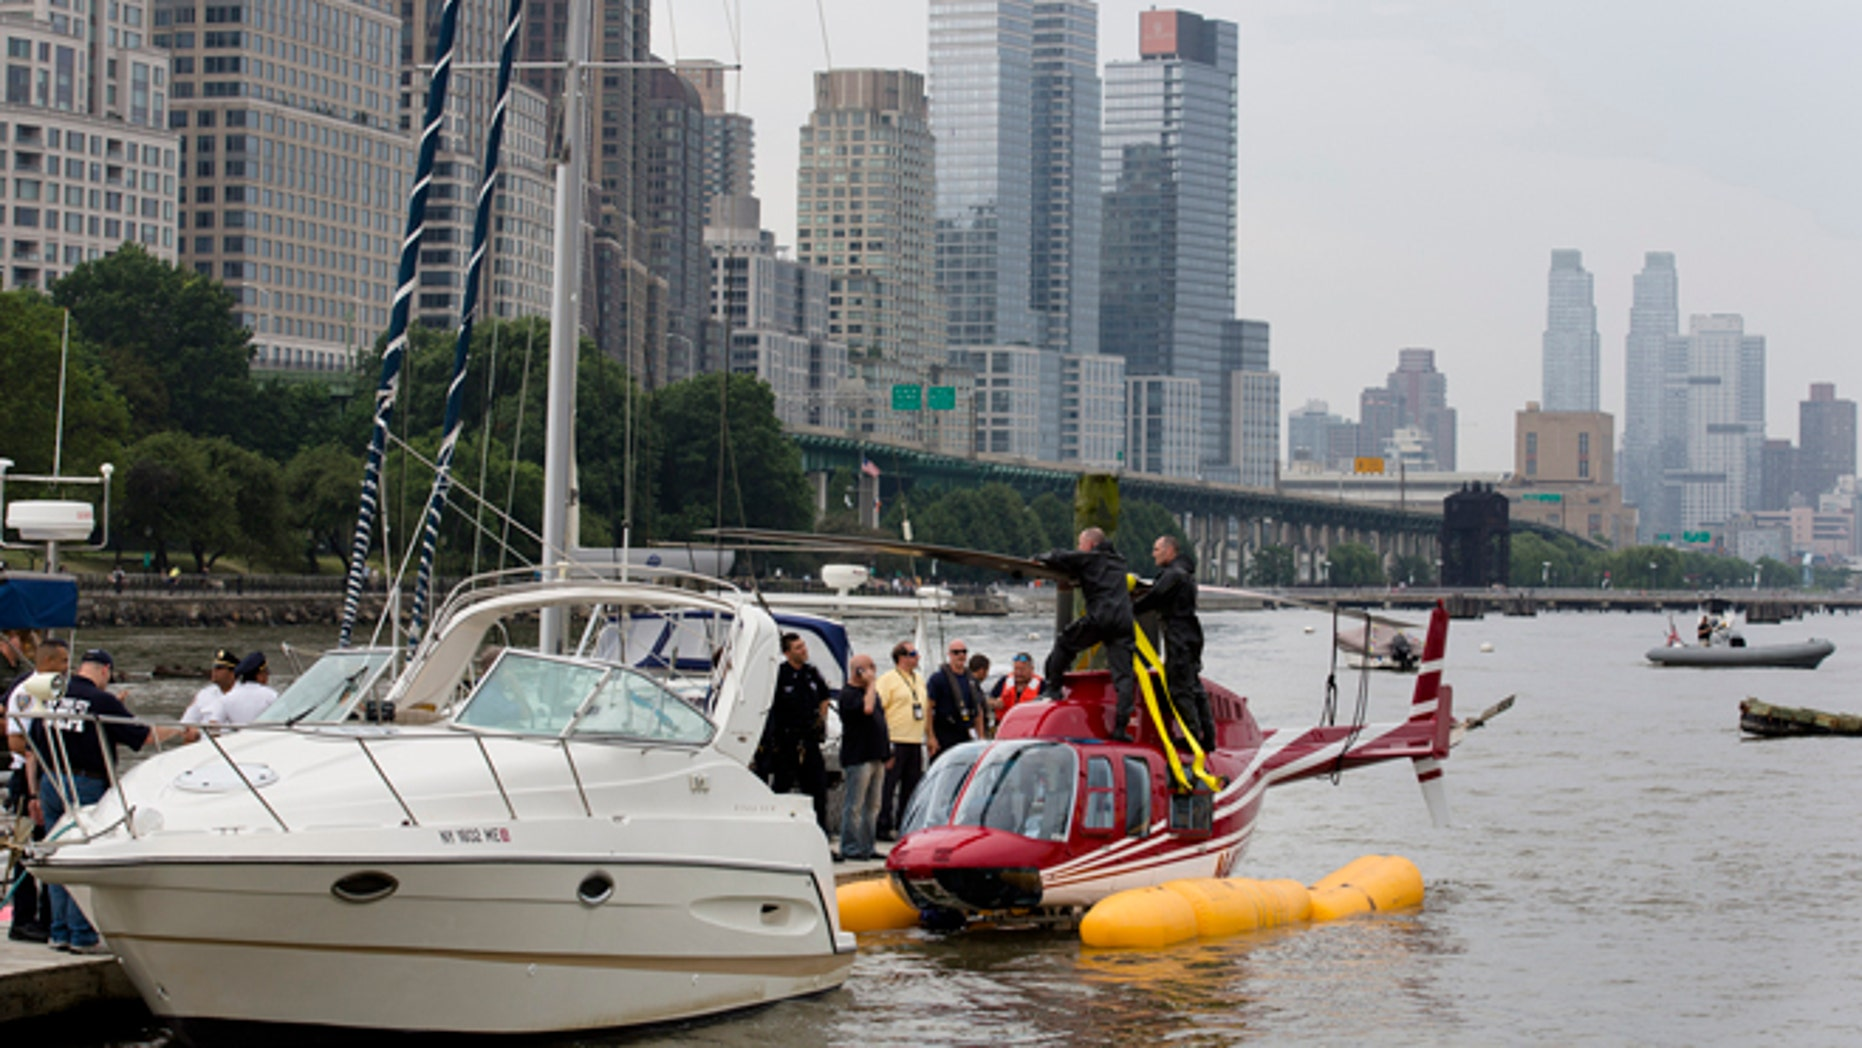 June 30, 2013: A helicopter rests on a pontoon at the 79th Street Boat Basin after emergency landing over the Hudson river in New York.